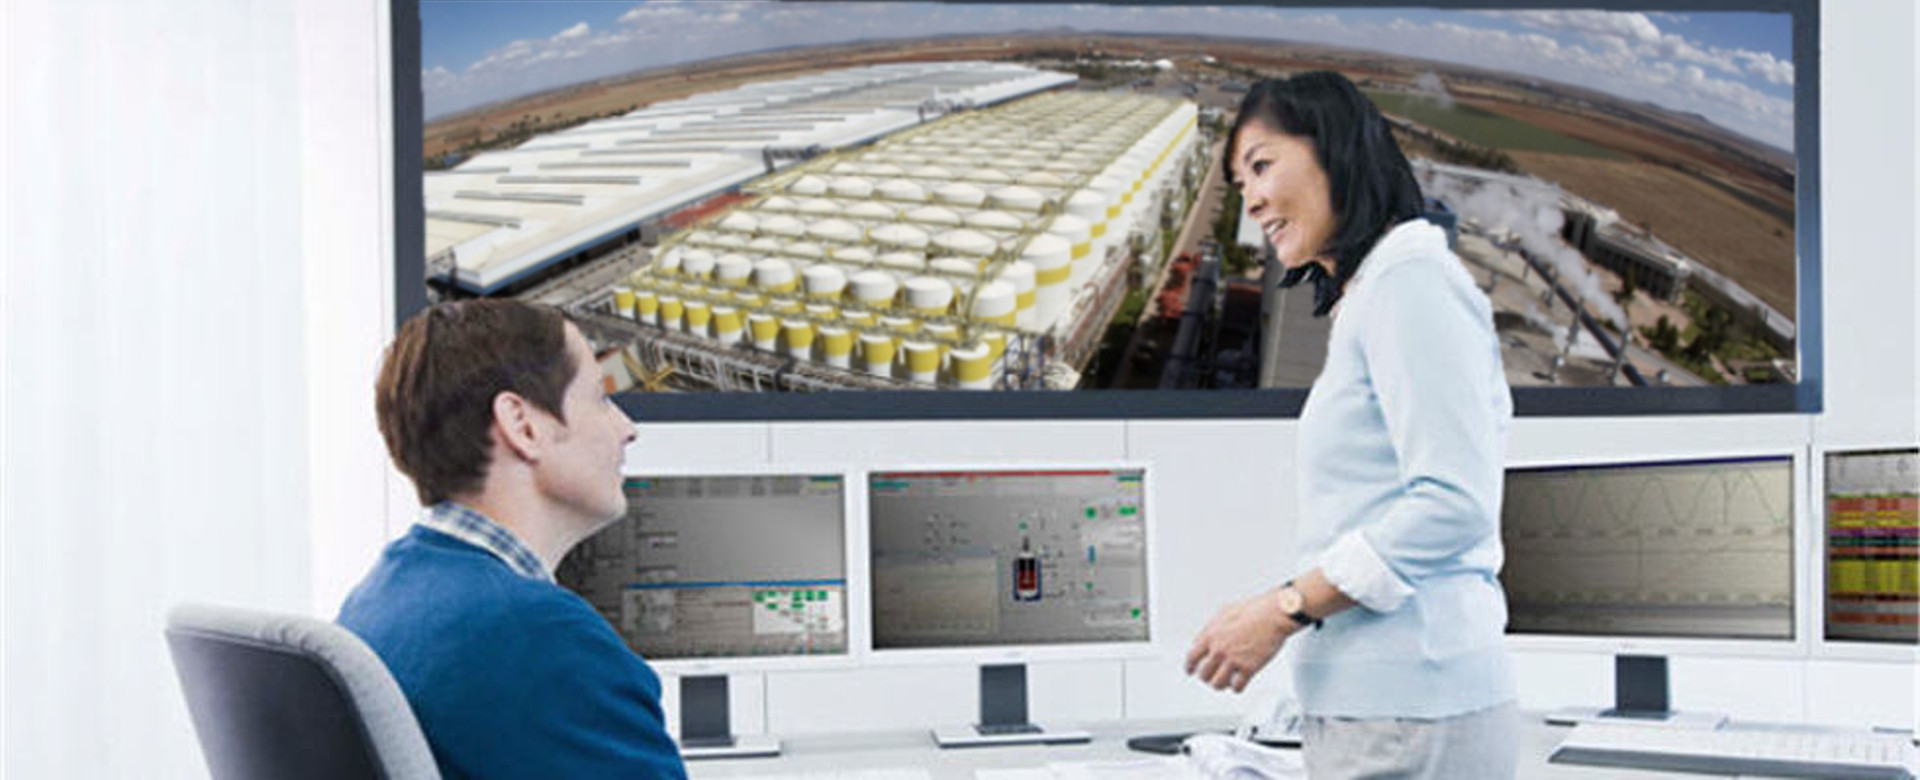 Process Control Room - large screen